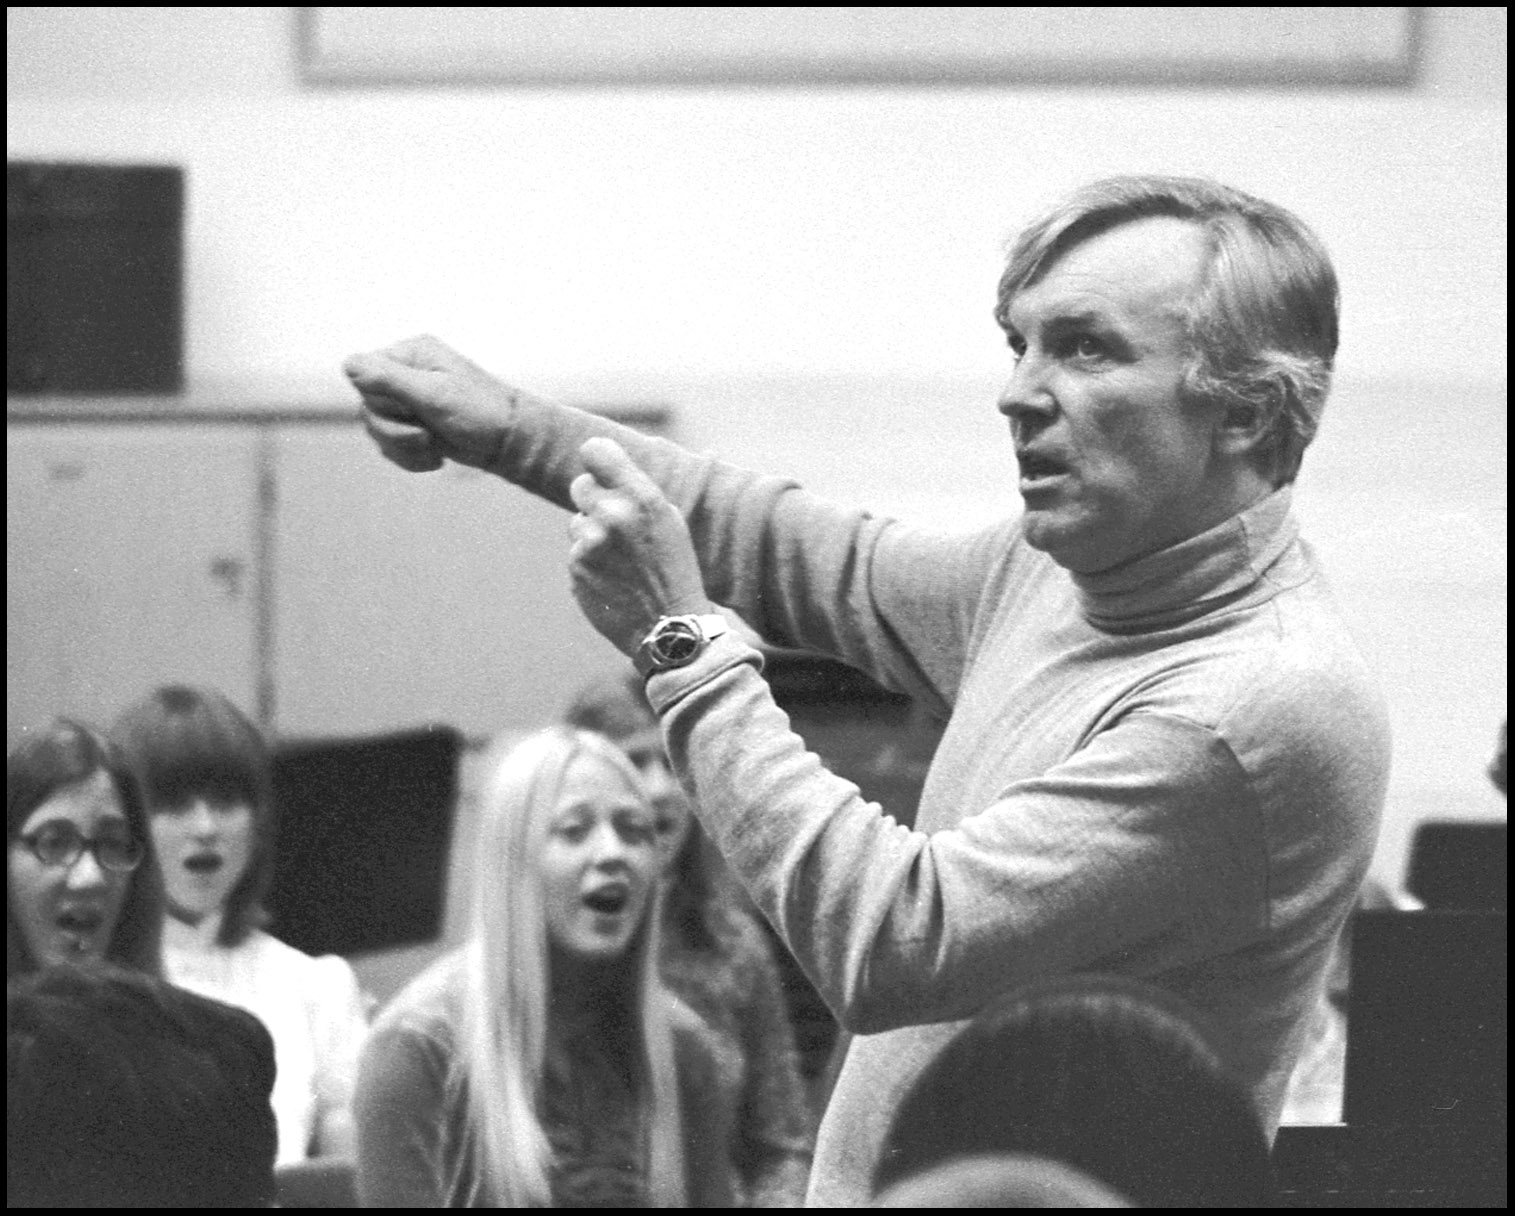 Frank Pooler conducting, 1970s